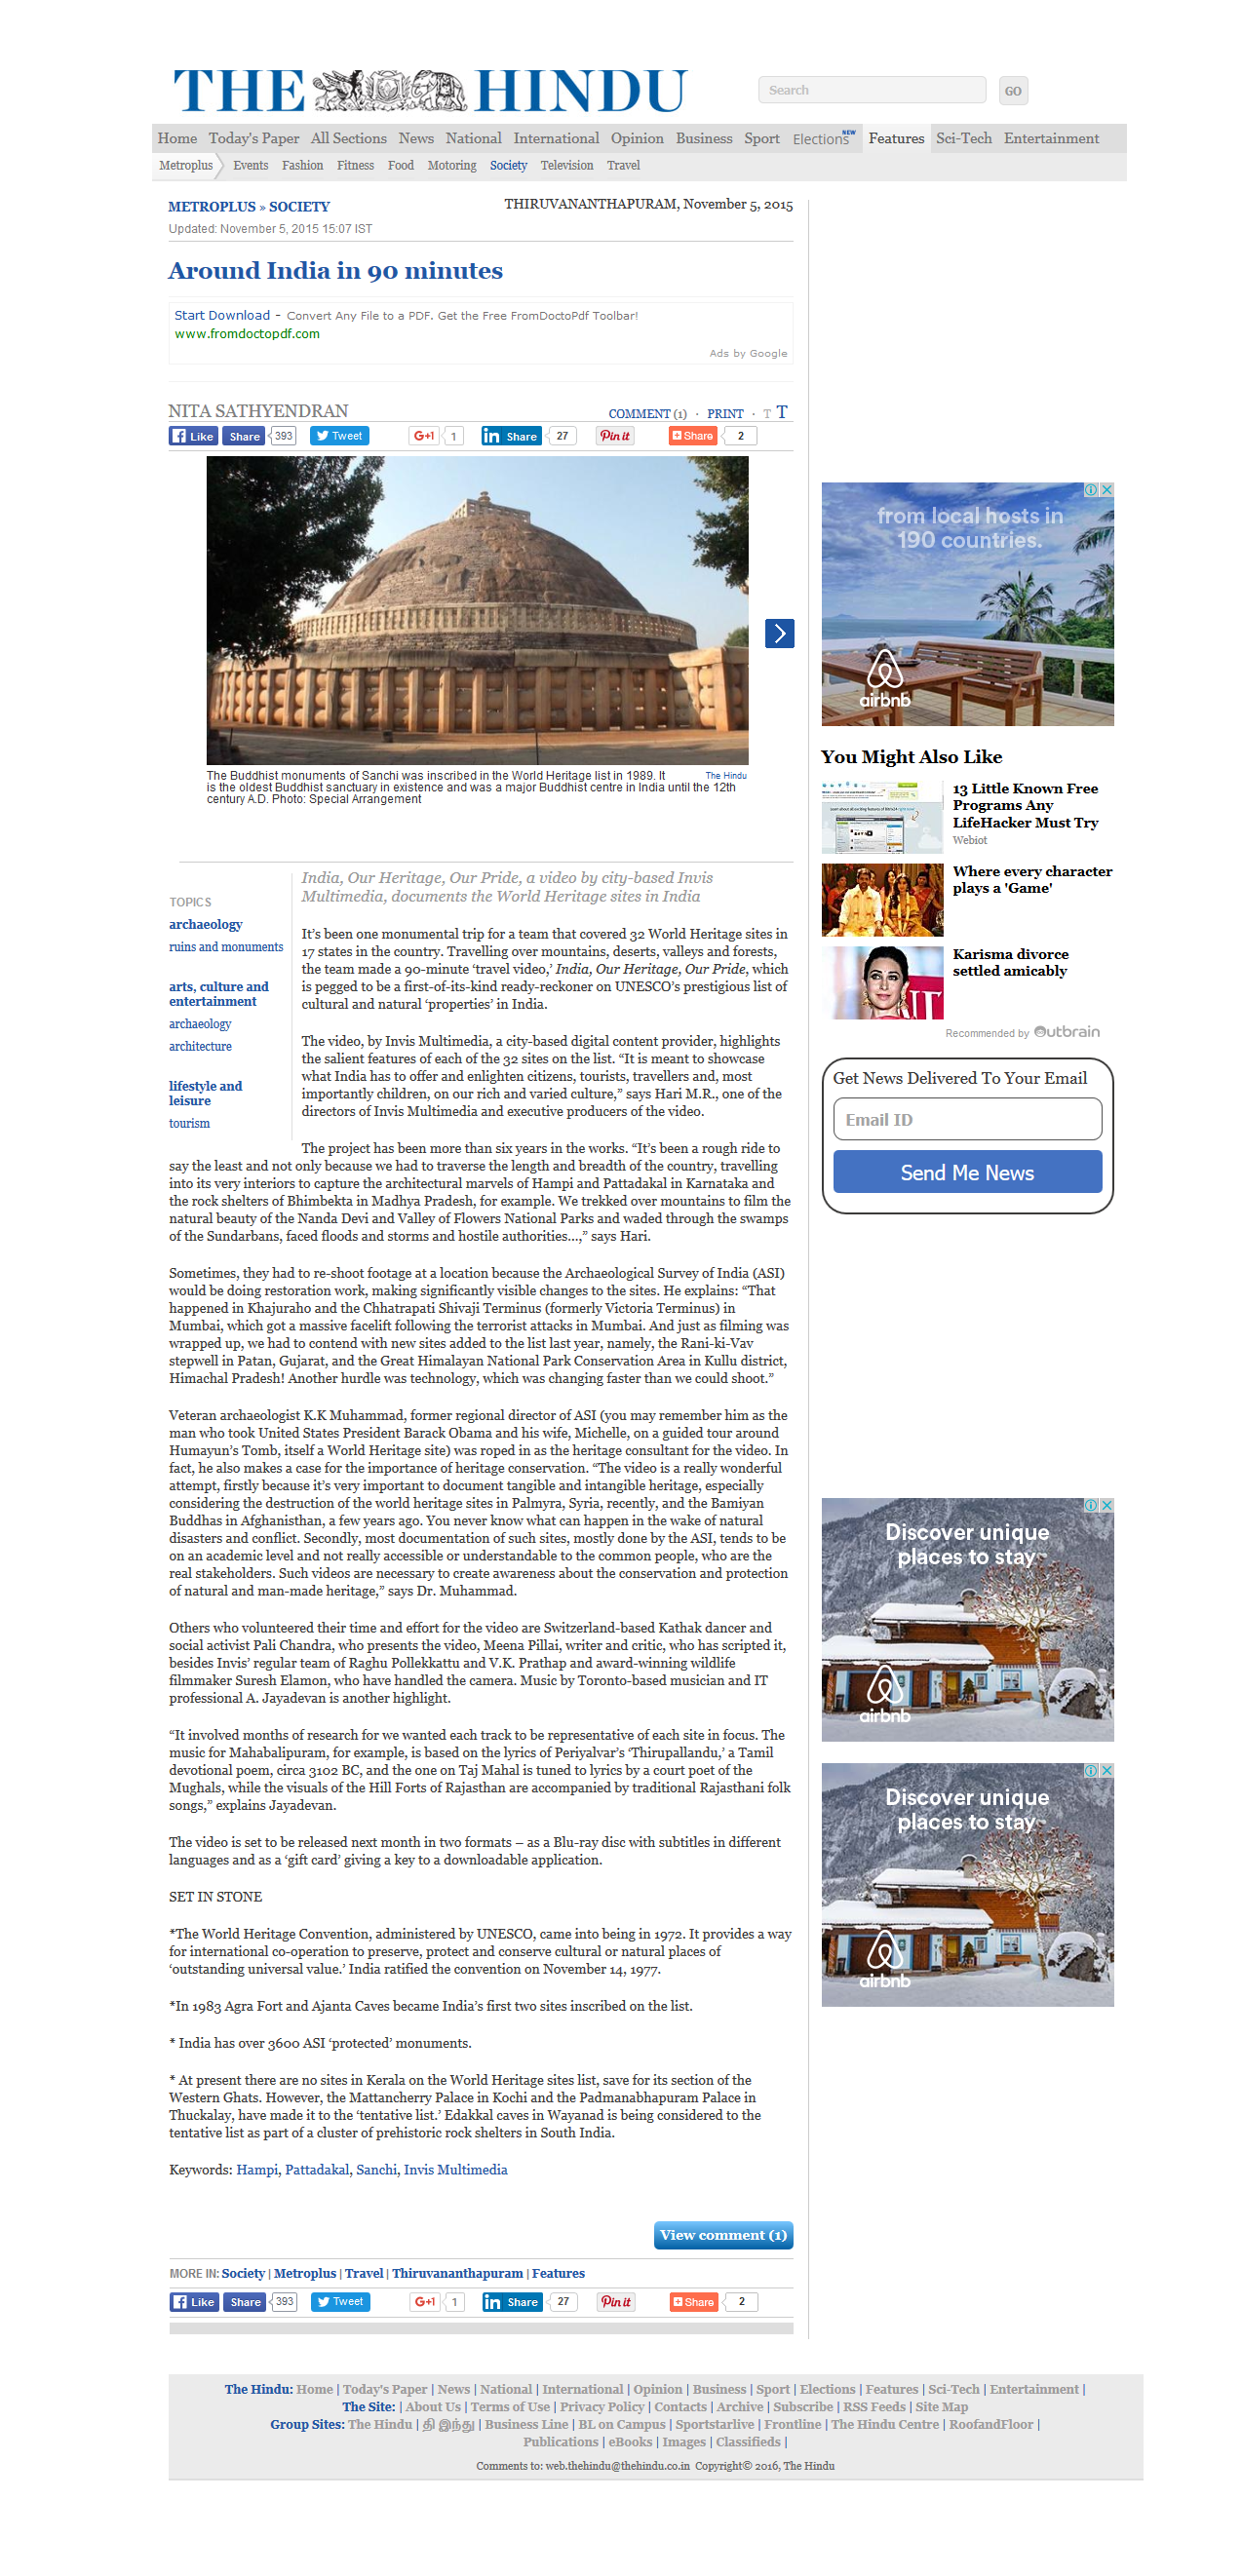 newspaper articles on indian culture and heritage